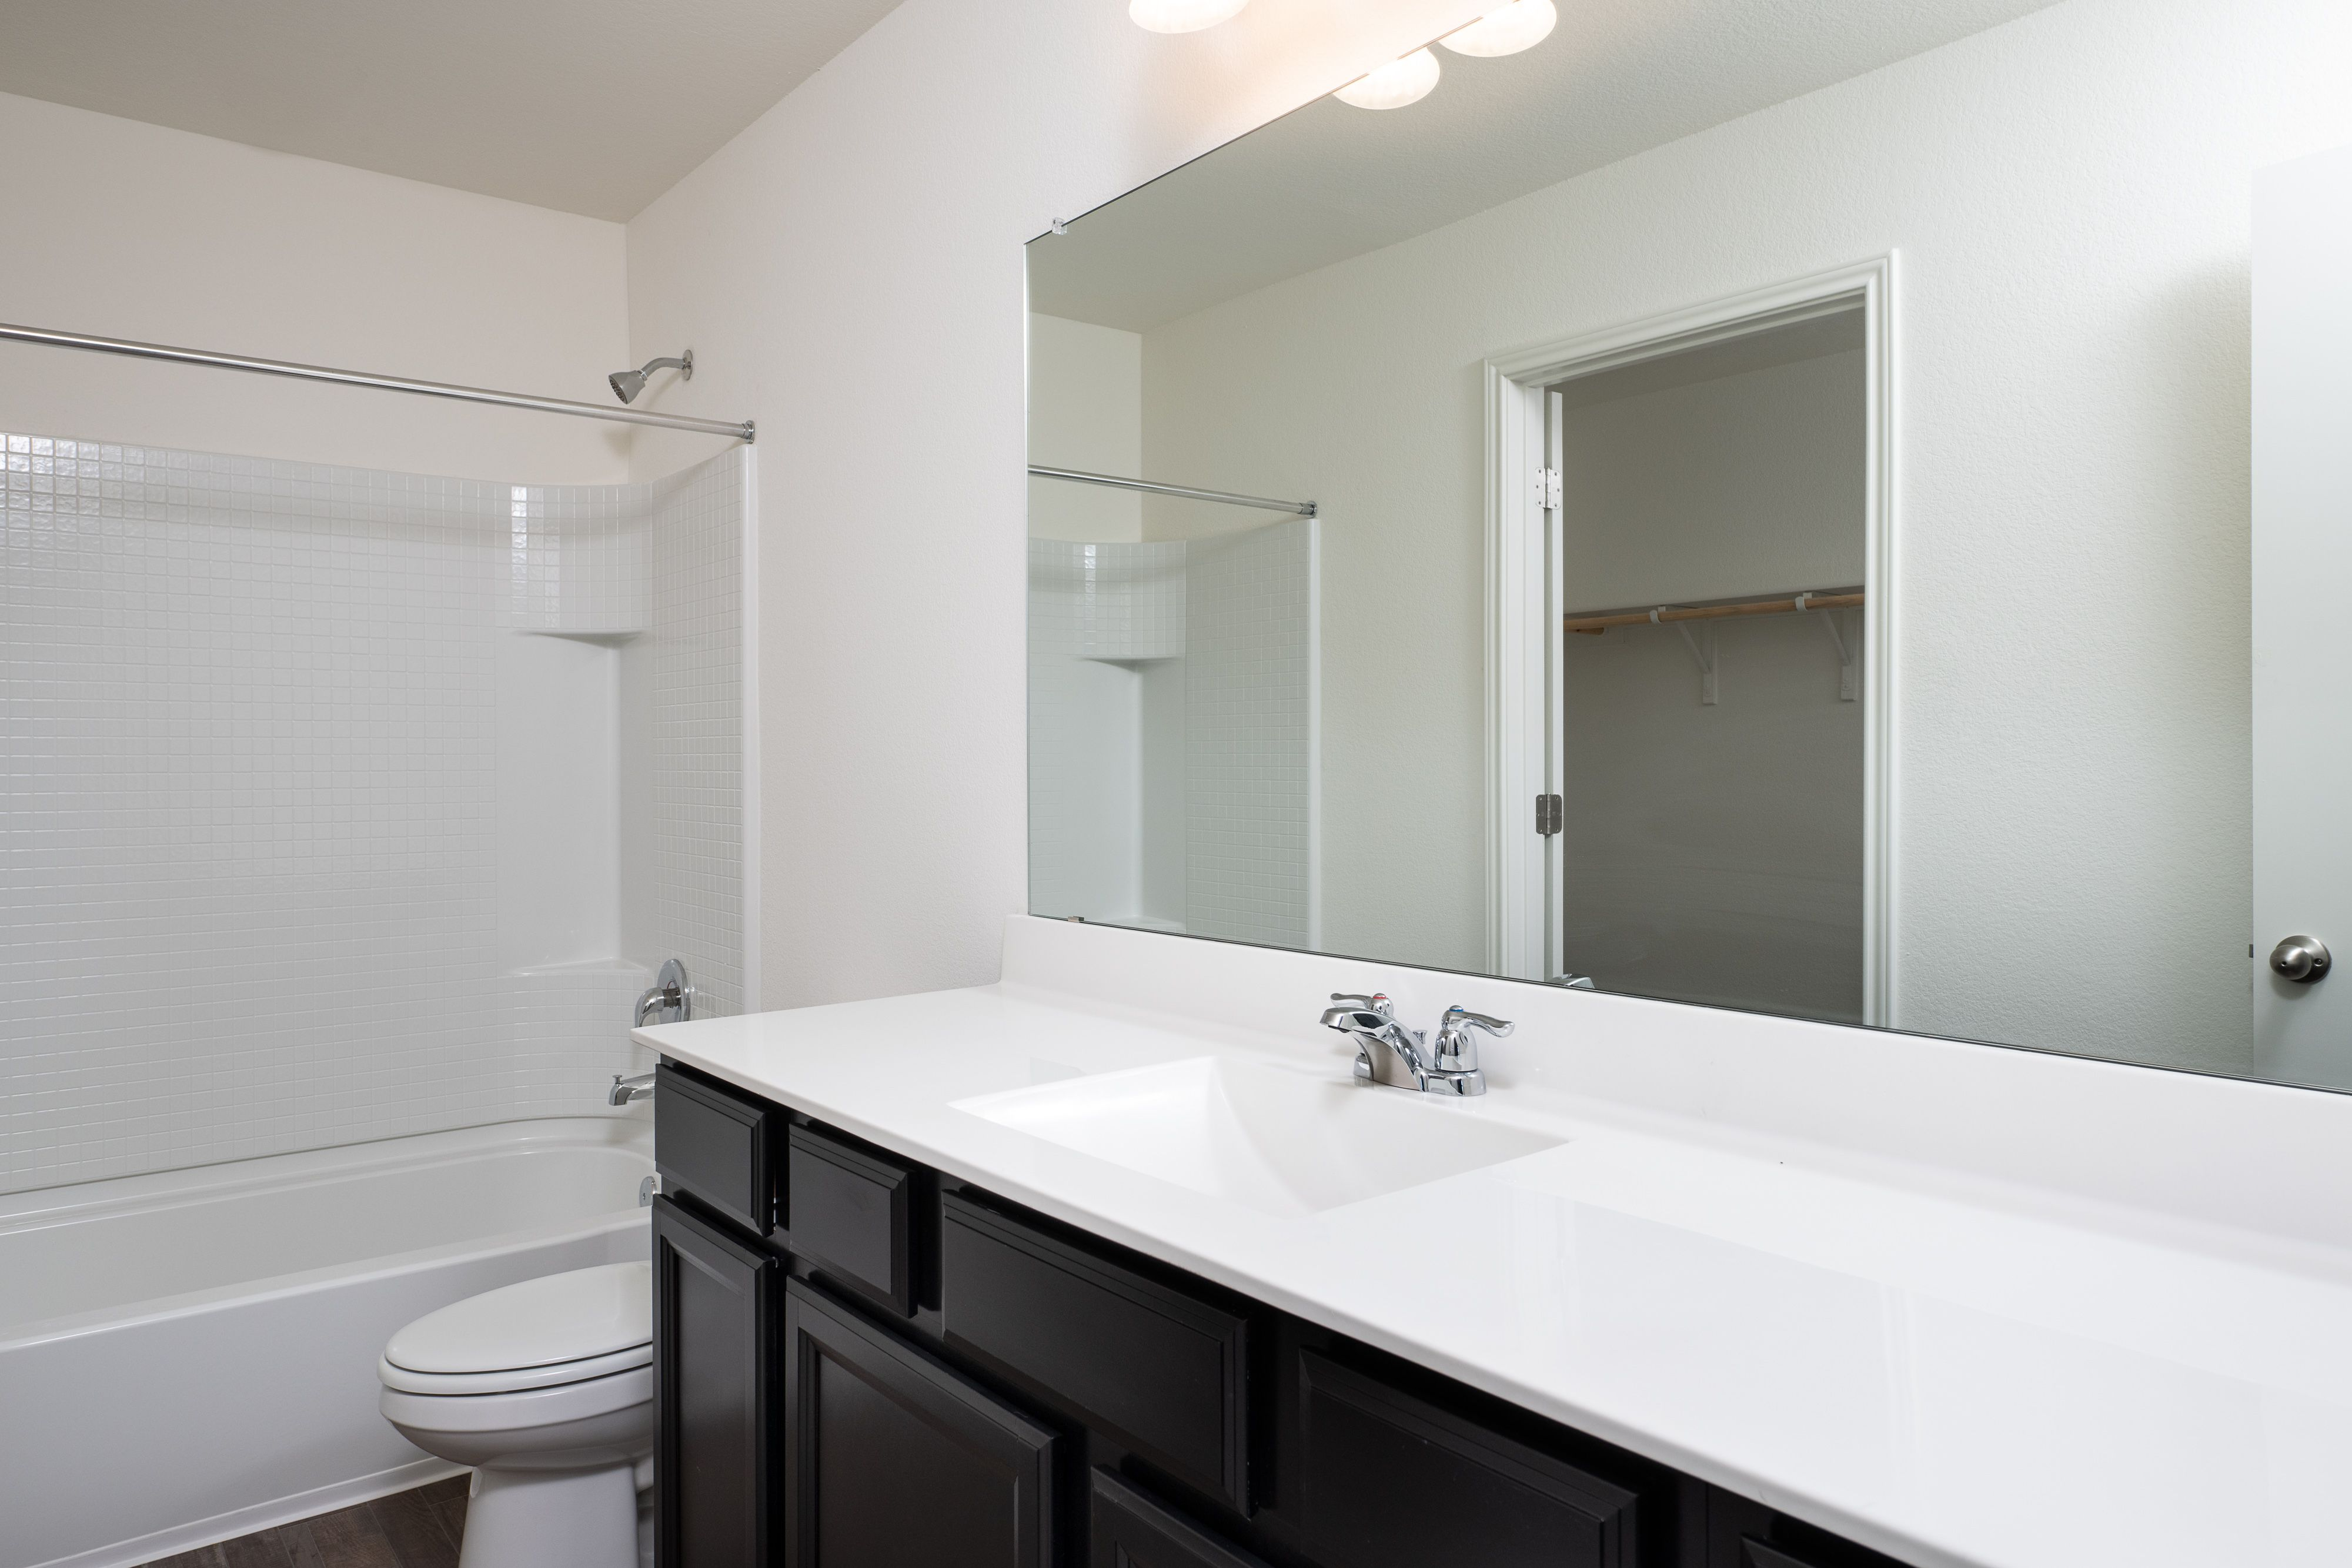 Bathroom featured in the Endeavor By Starlight Homes in Austin, TX